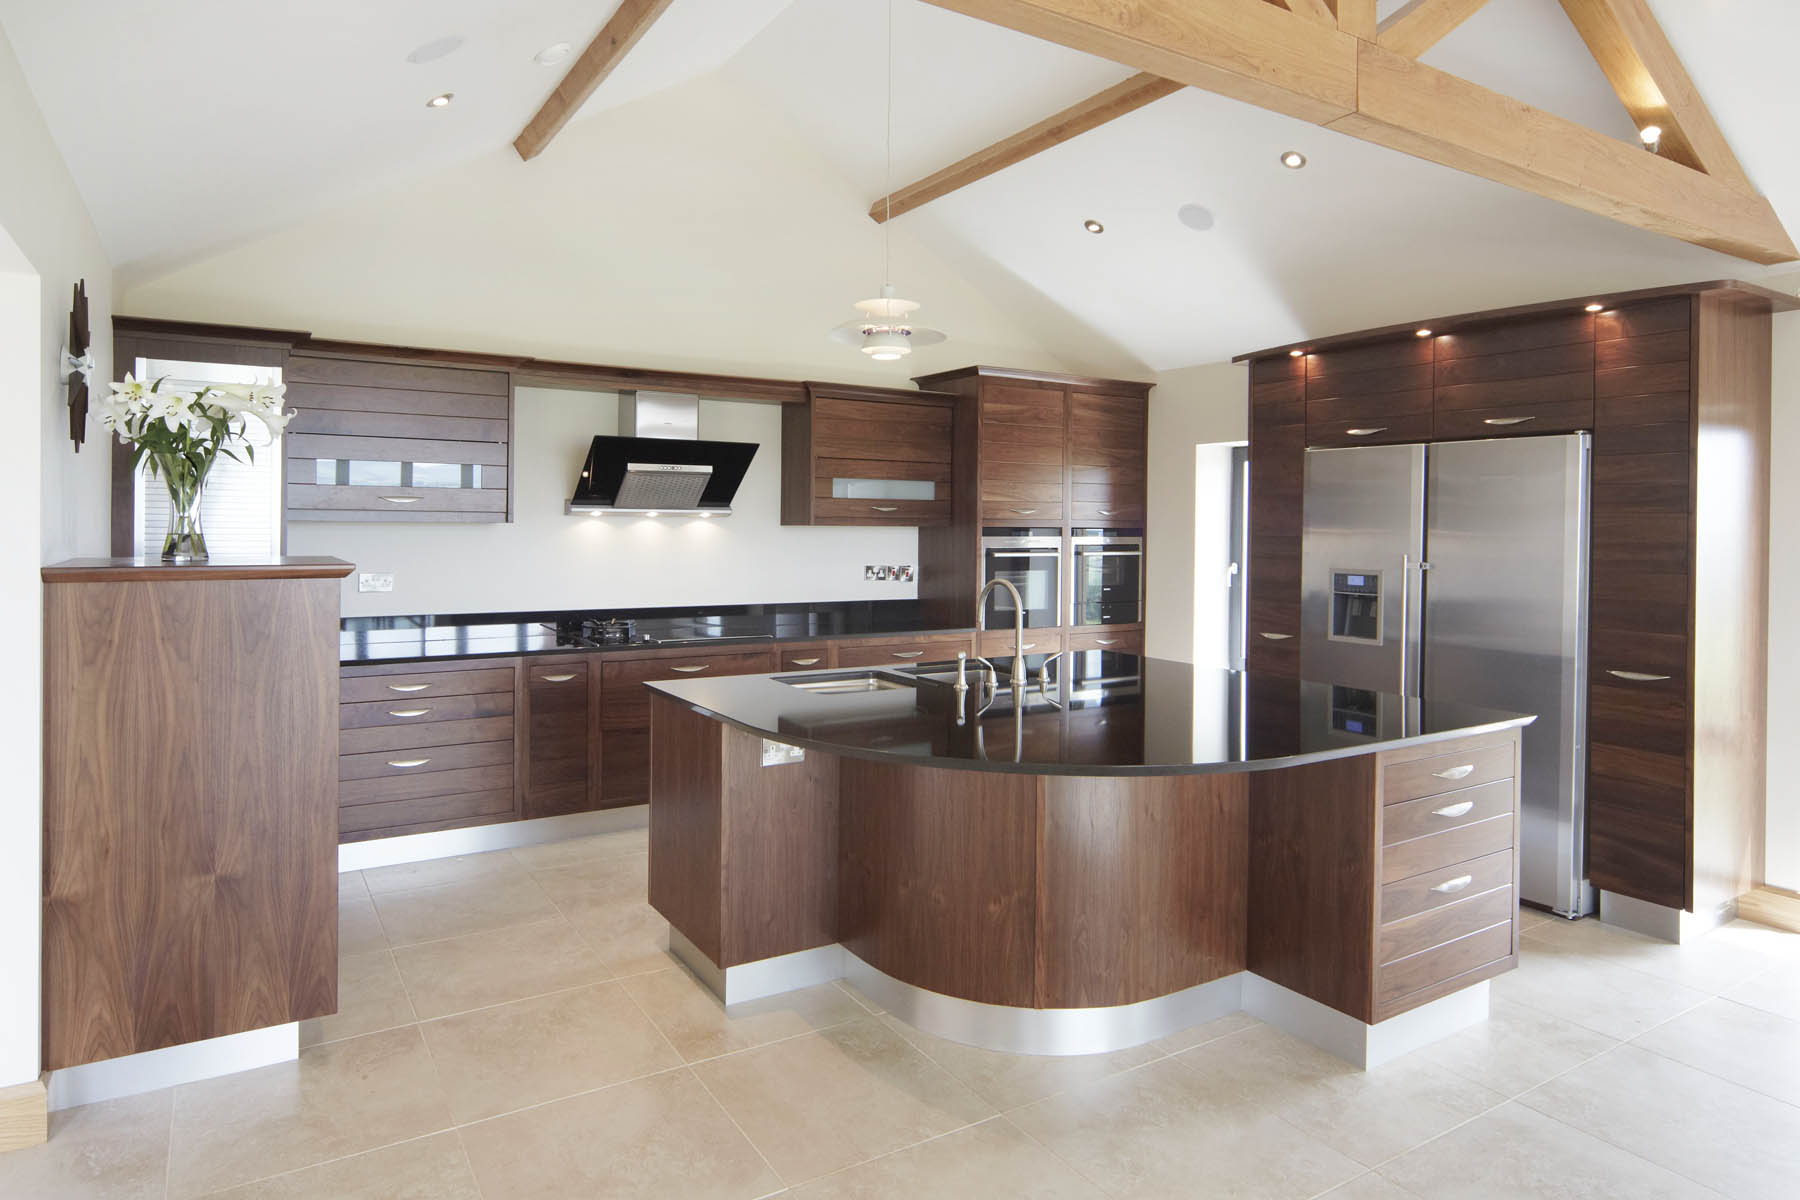 Kitchens california remodeling inc for Pictures of kitchen plans